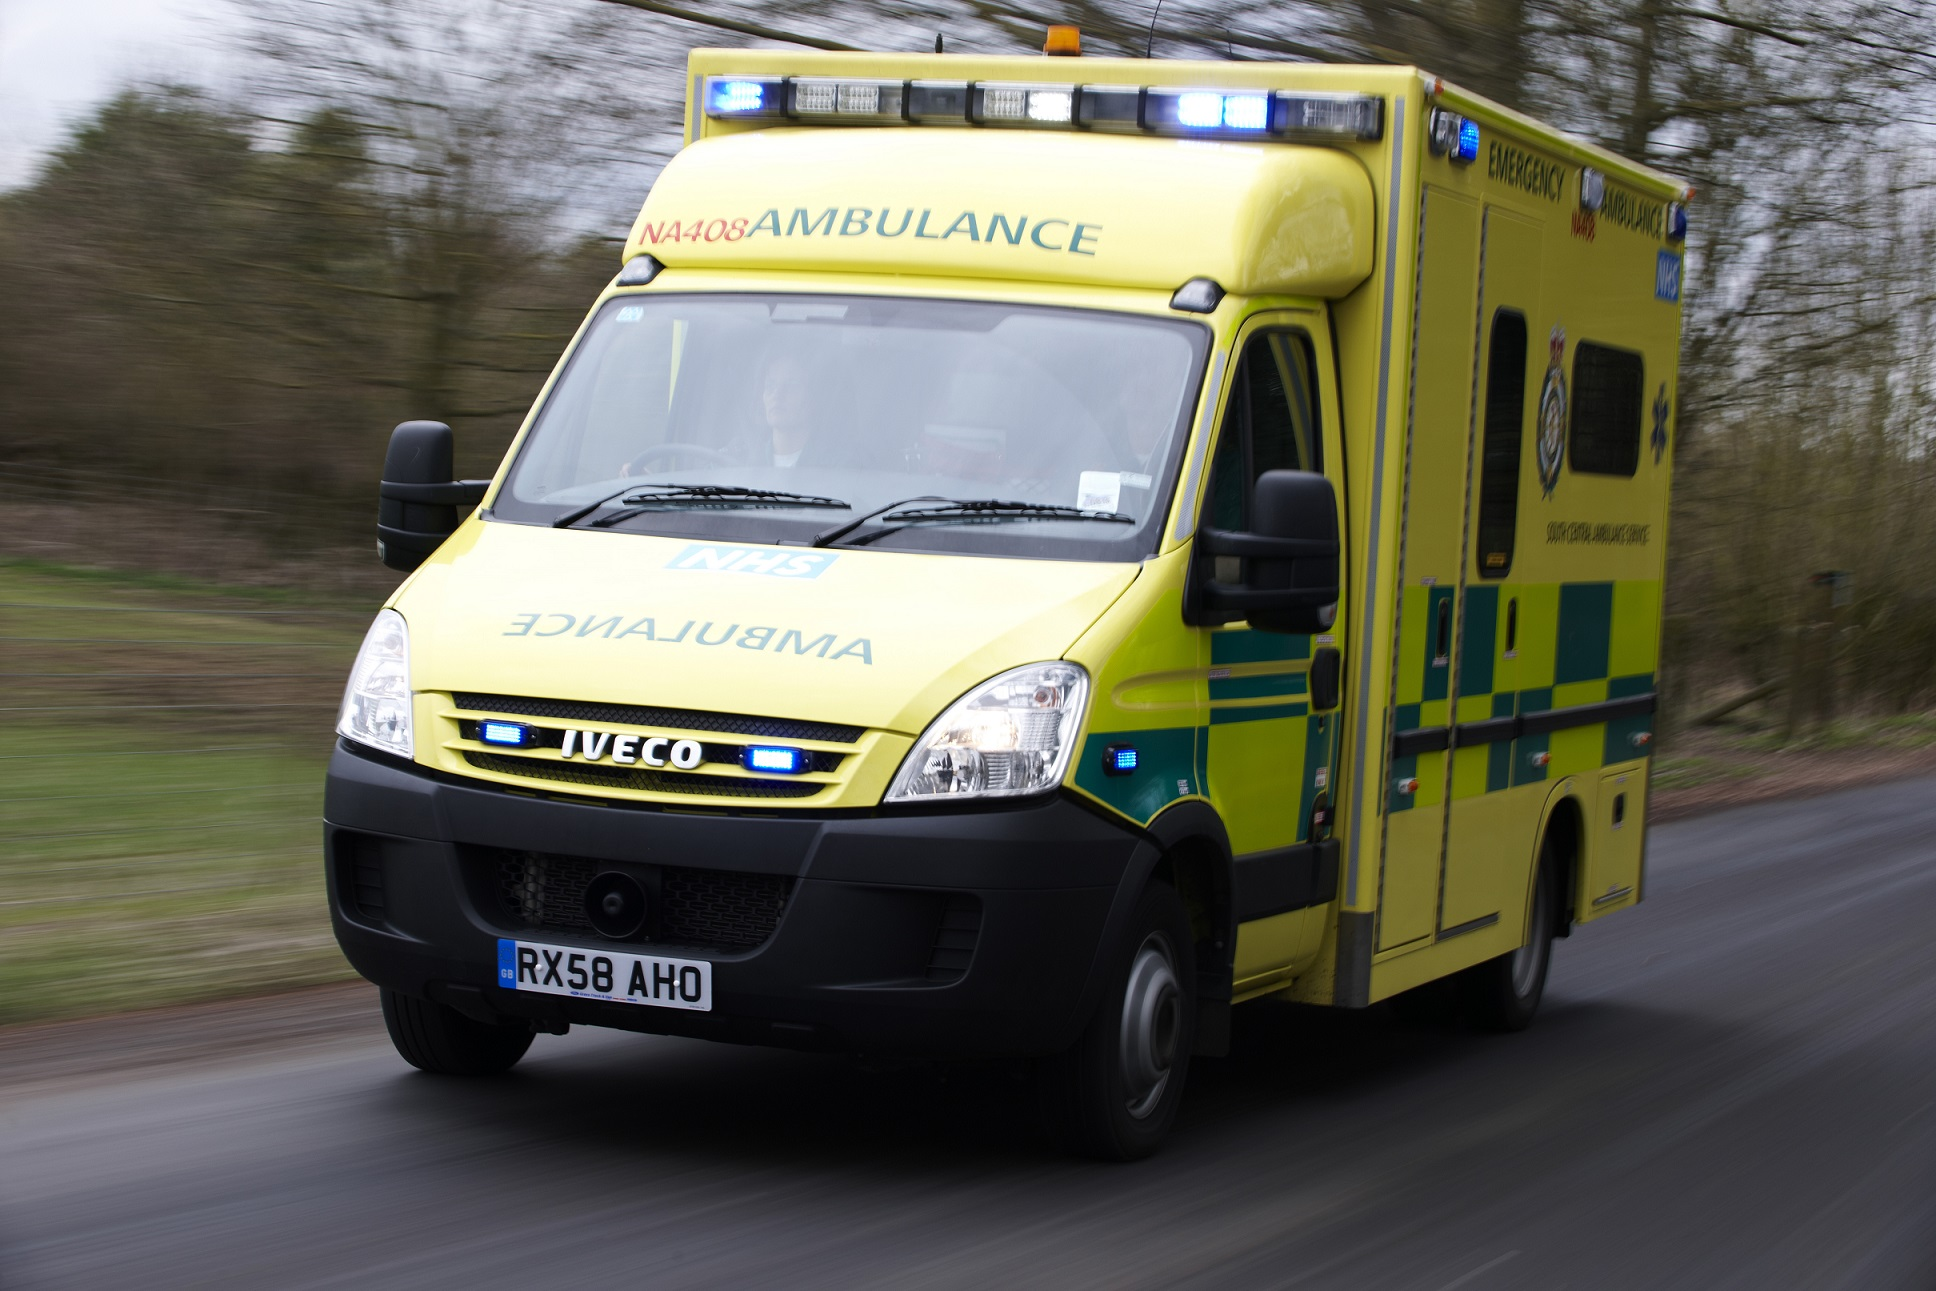 Two people injured in crash on busy road